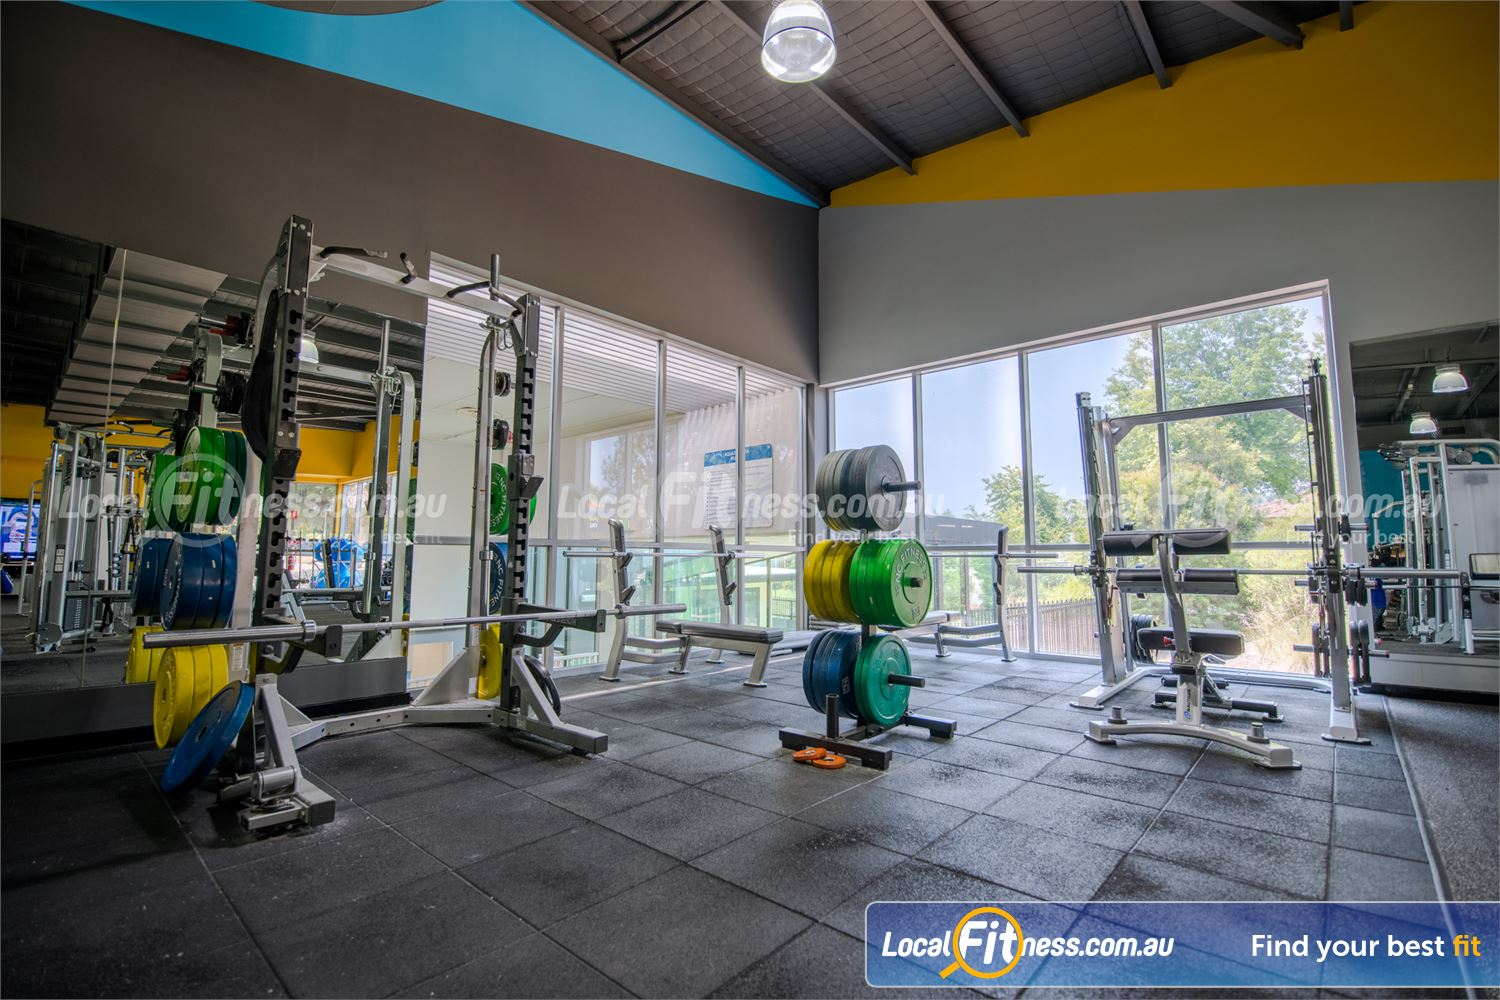 Knox Leisureworks Near Ferny Creek Heavy duty machines including a smith machine, power rack, bench presses and more.